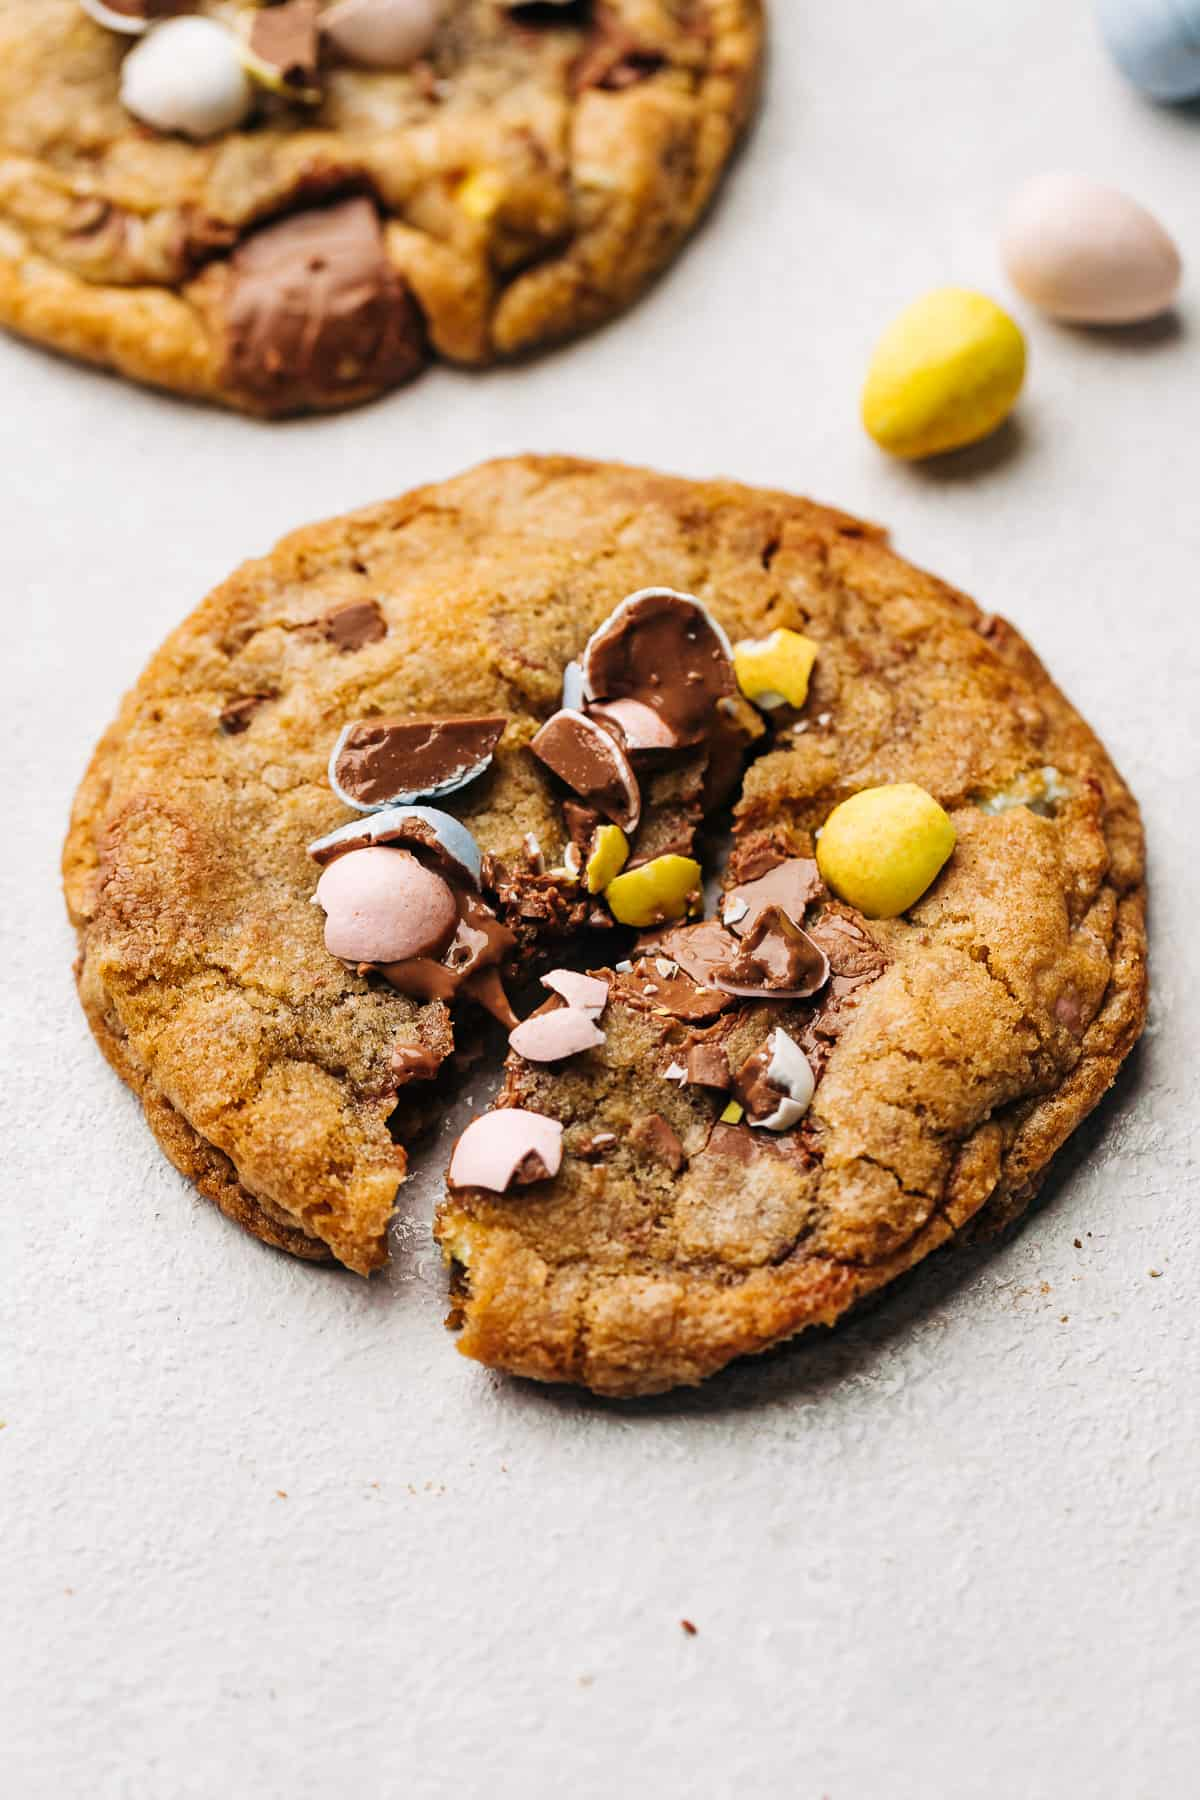 Cadbury Mini Egg milk chocolate chip cookie cut in the center.